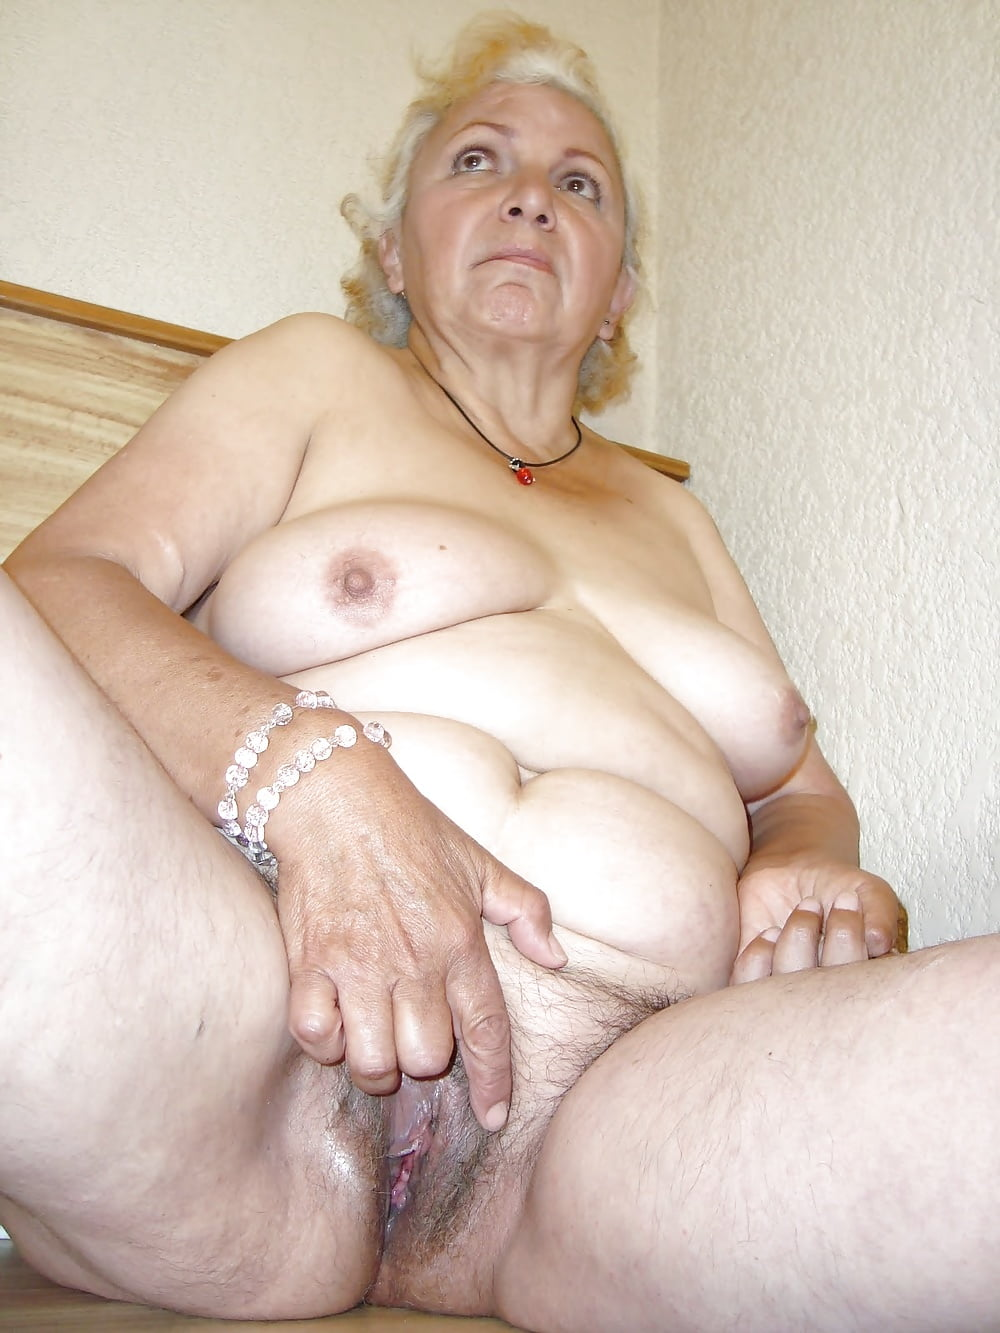 Old granny nude pictures